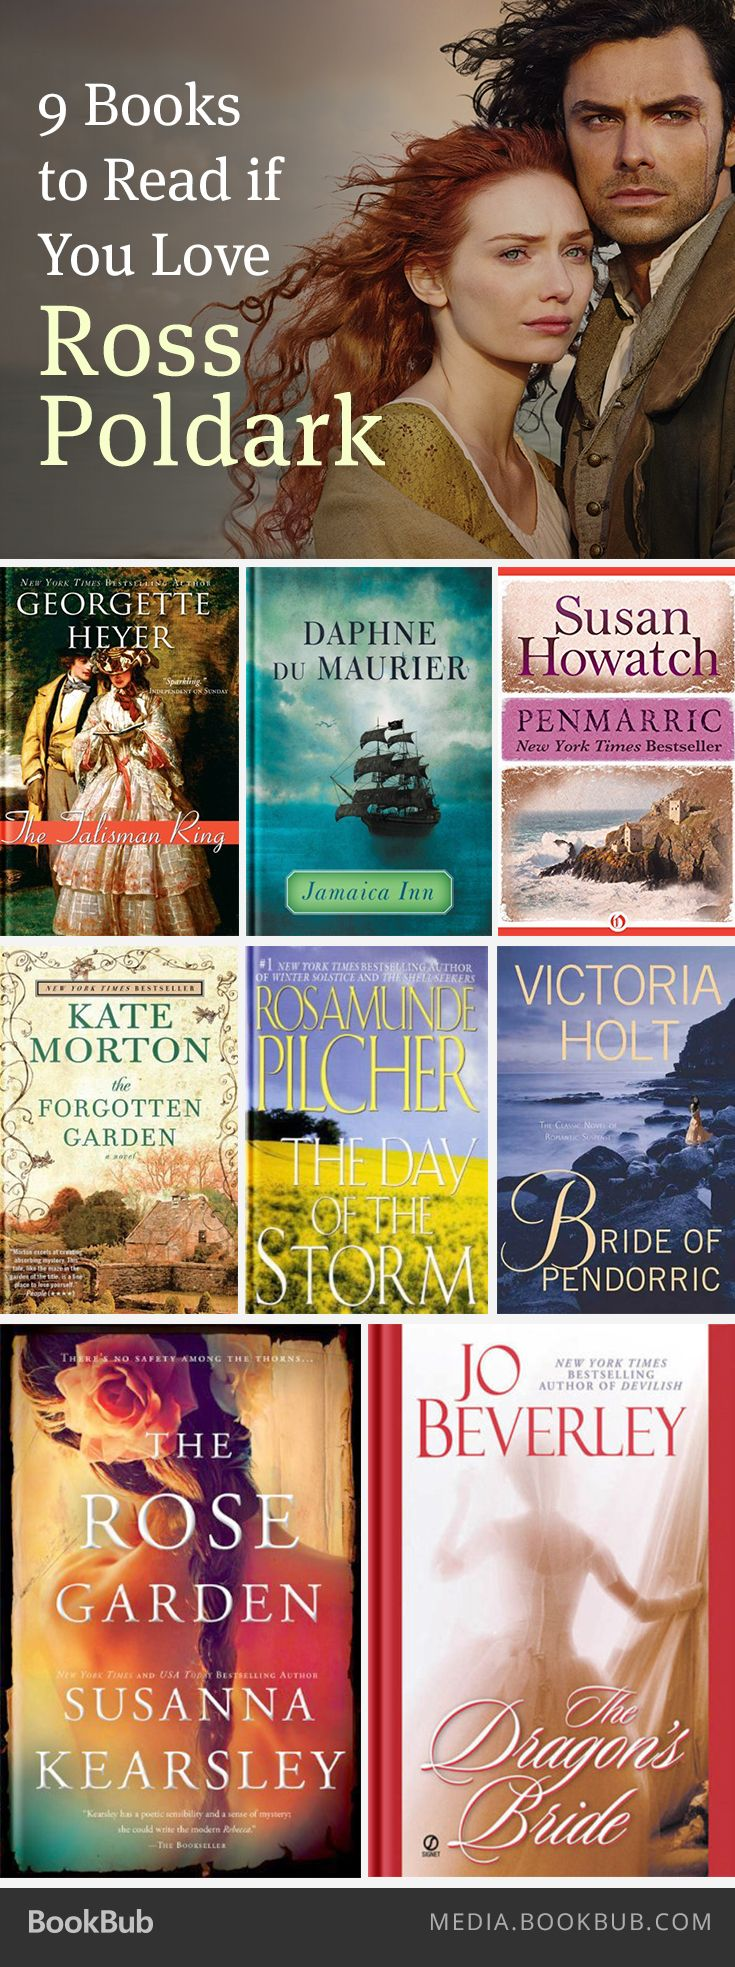 9 Books To Read If You Love 'ross Poldark'